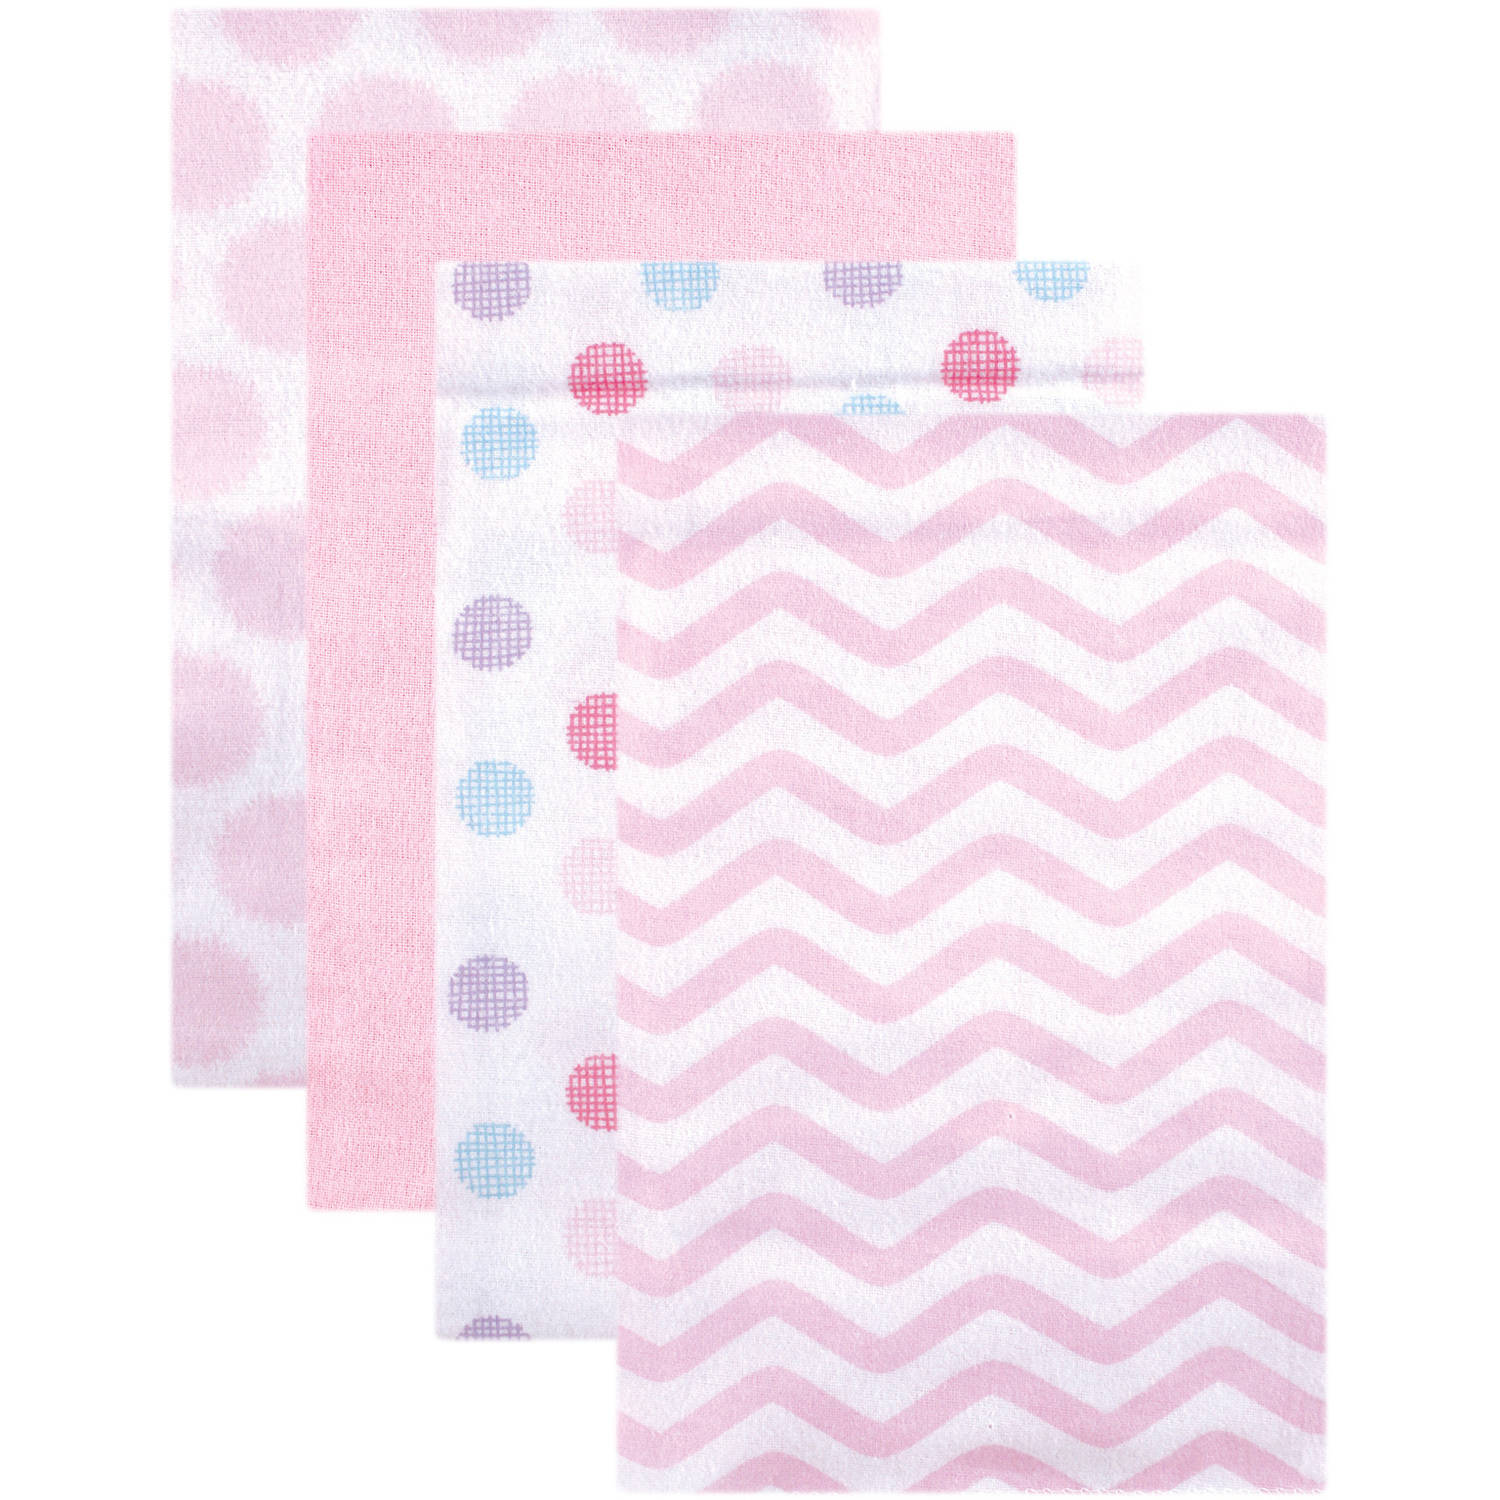 Luvable Friends Receiving Blankets Flannel, 4pk, Pink Dots